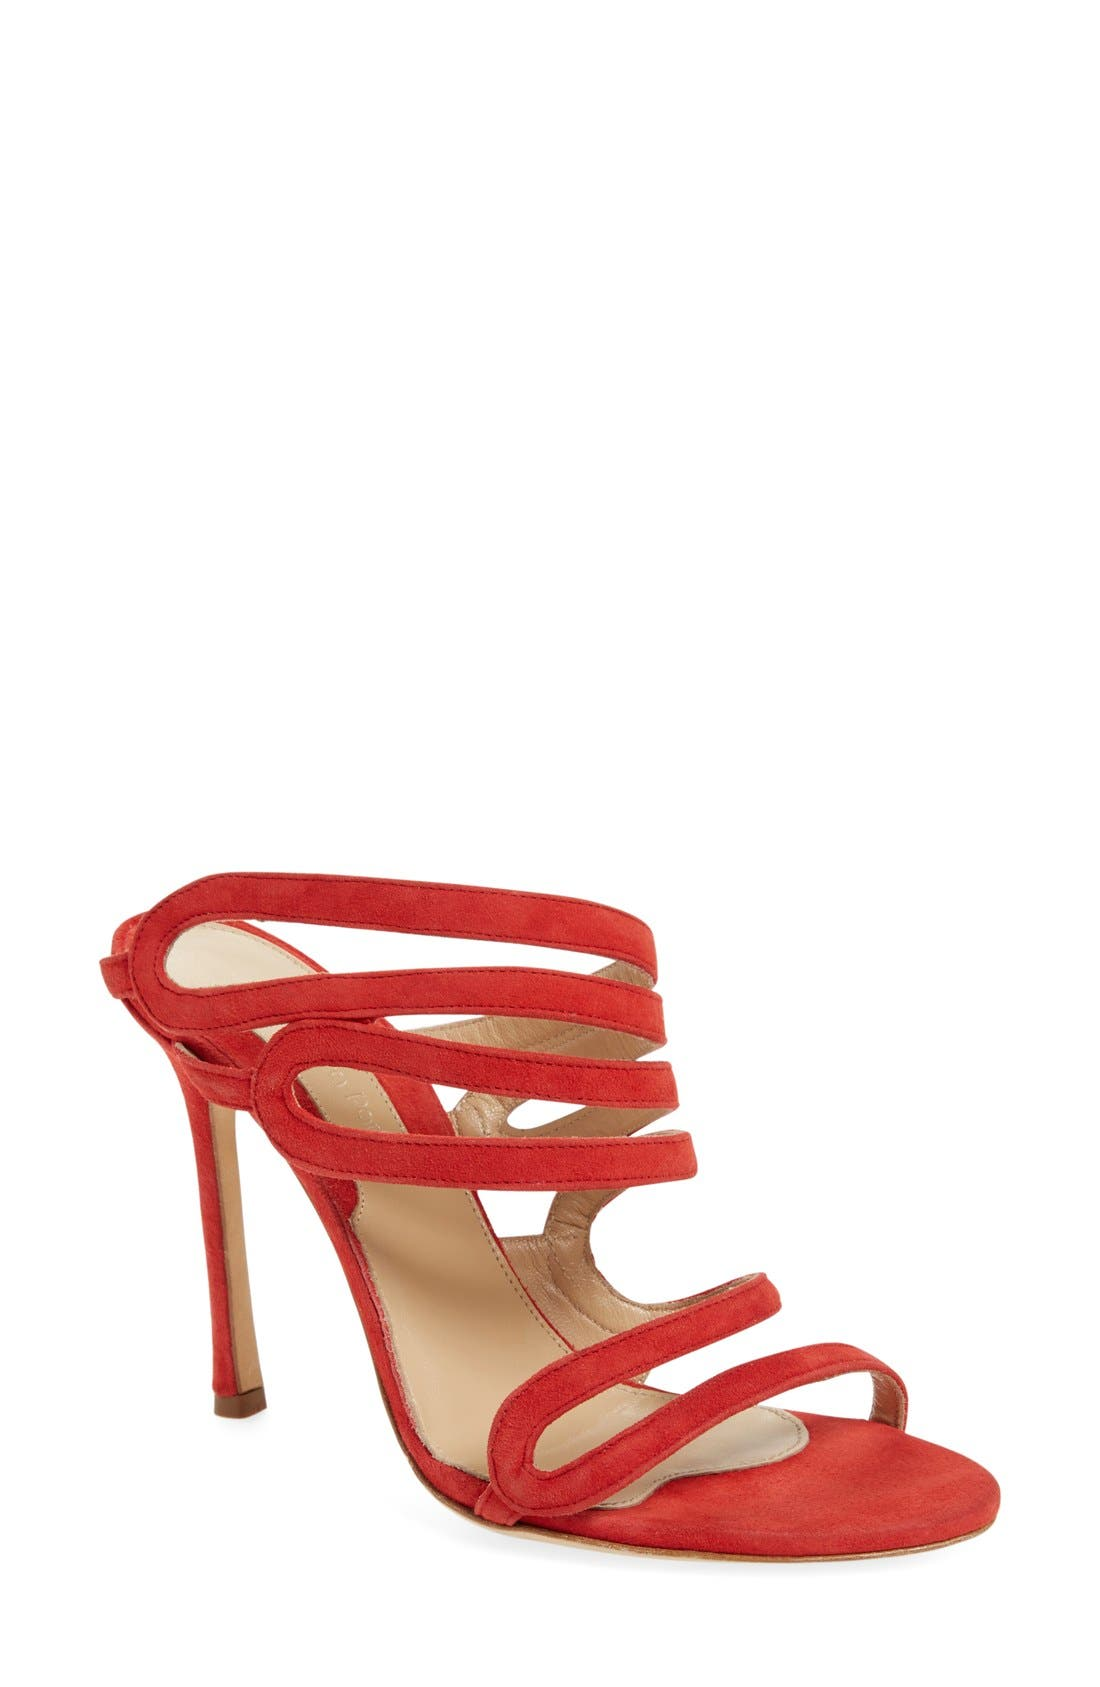 Alternate Image 1 Selected - Chelsea Paris 'Melek' Sandal (Women)